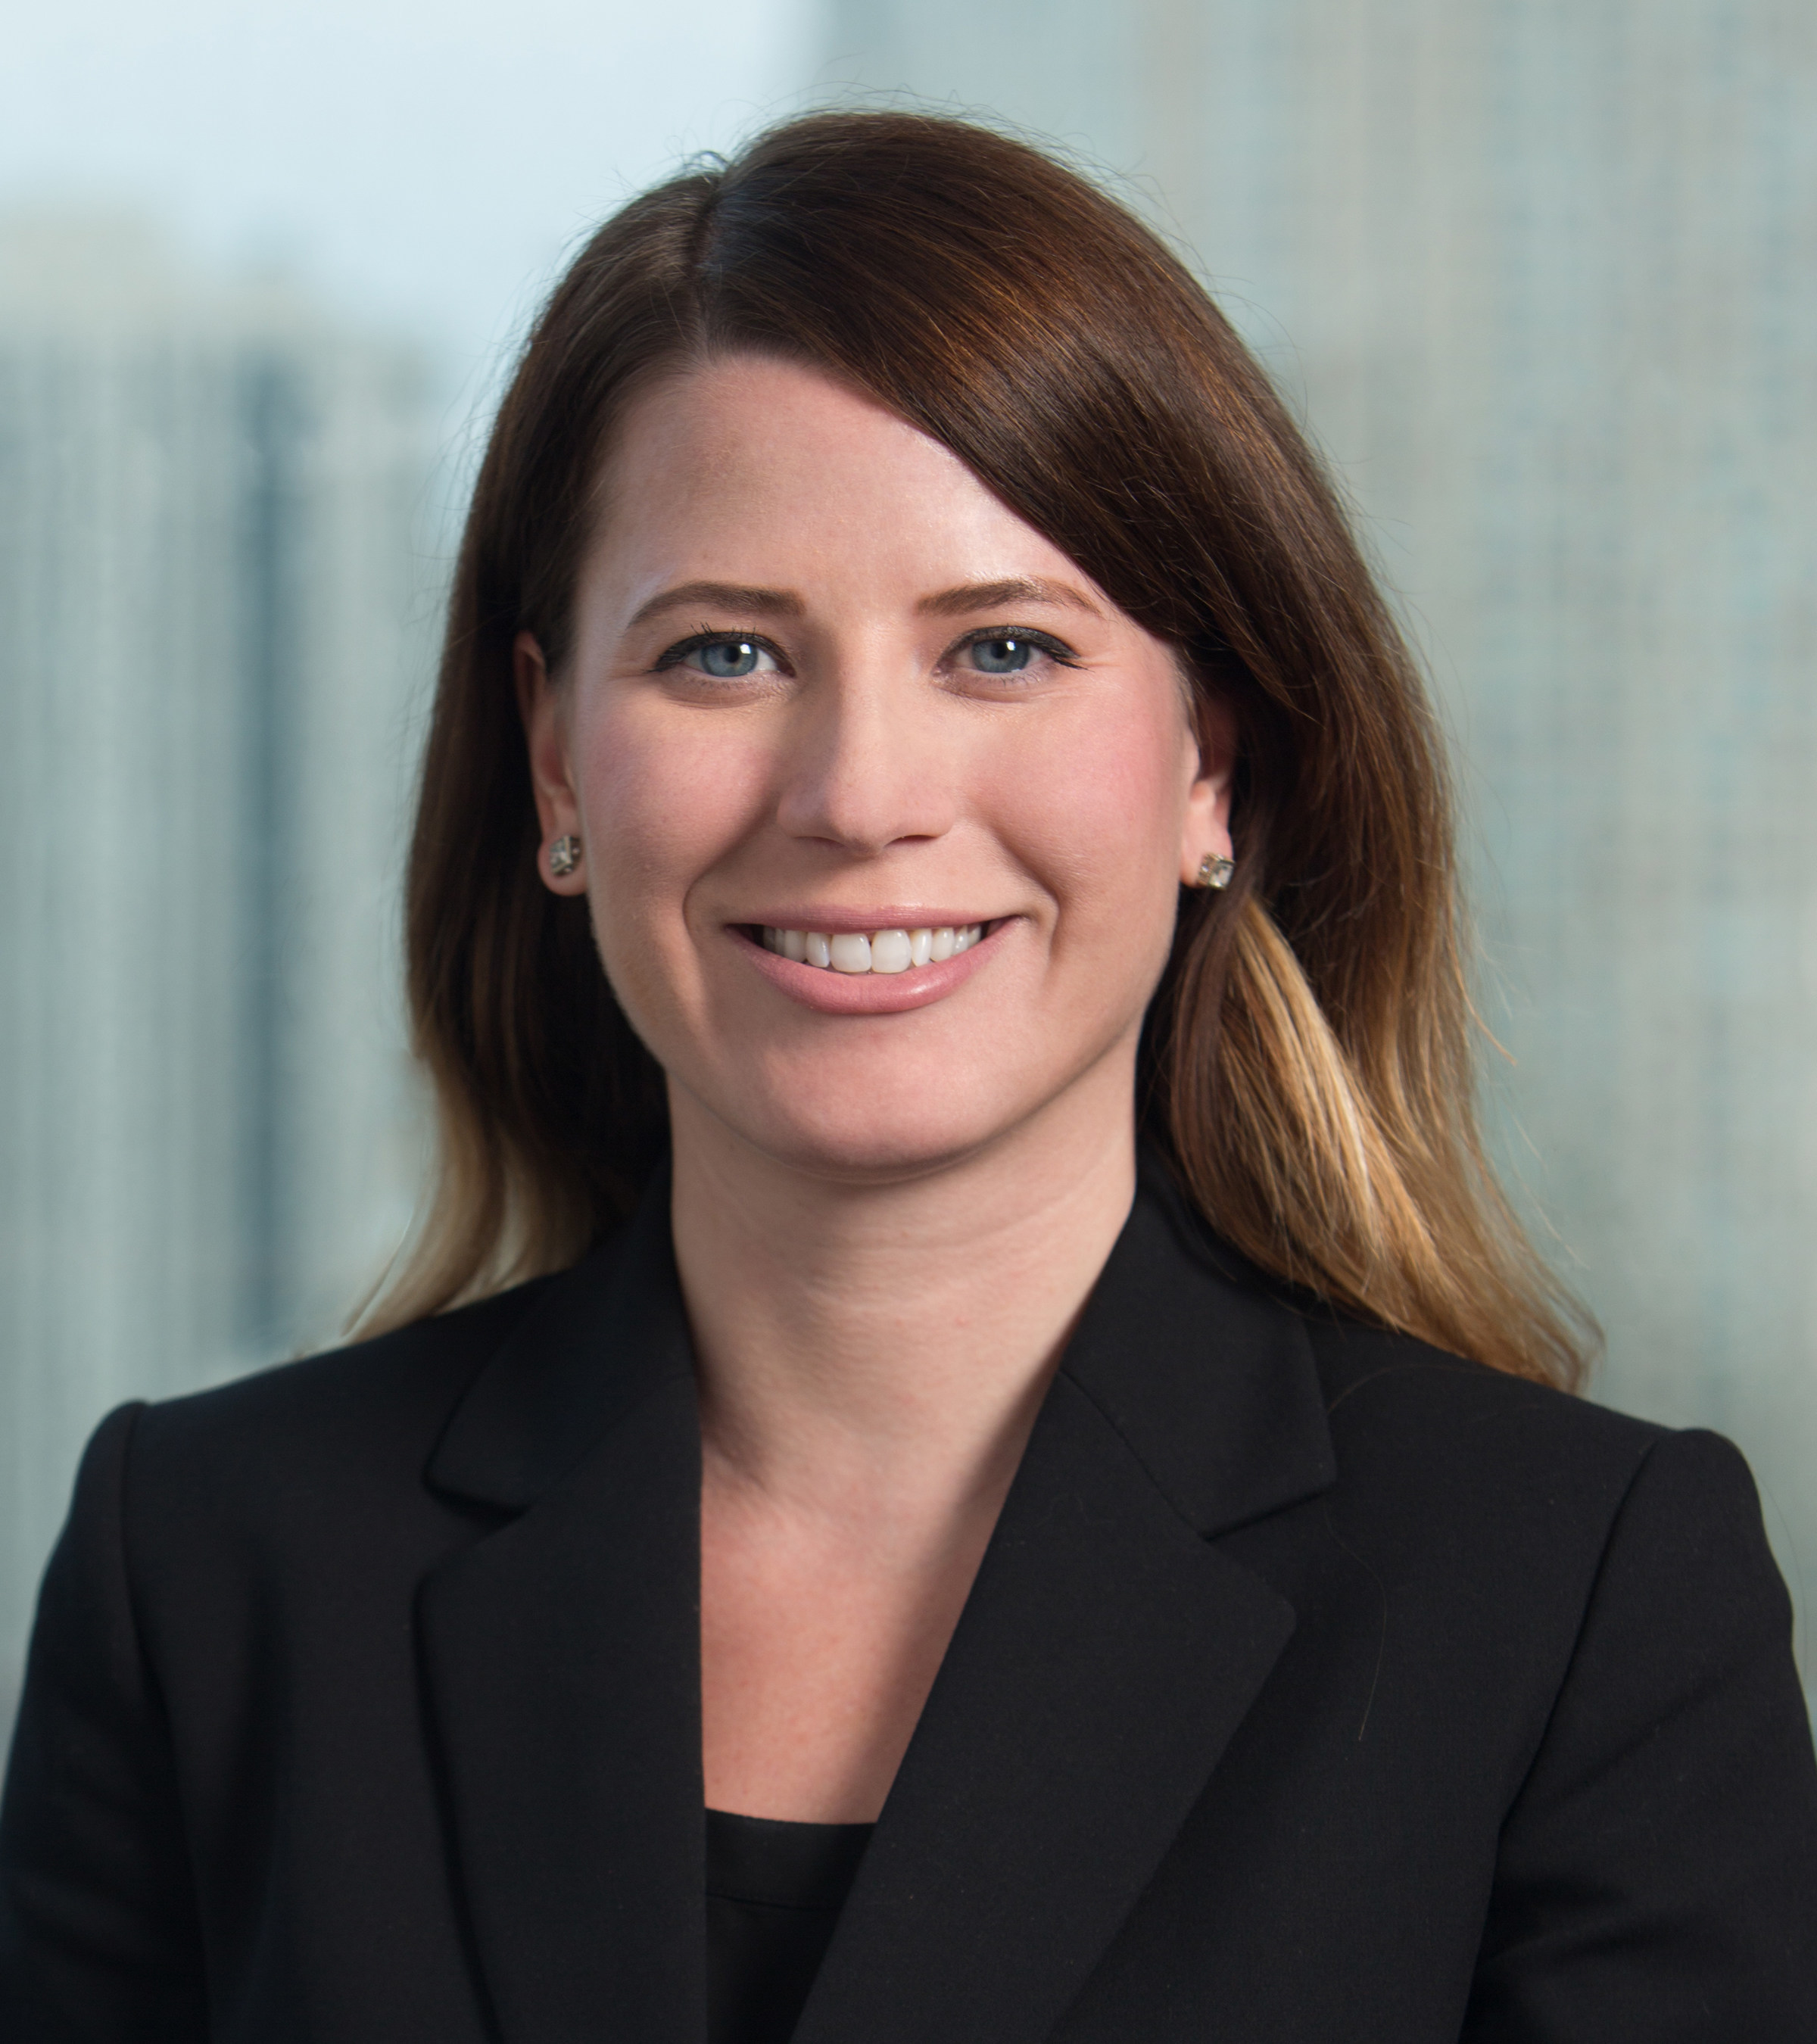 Attorney Charlotte P. Felber joins the Chicago office of McDonald Hopkins